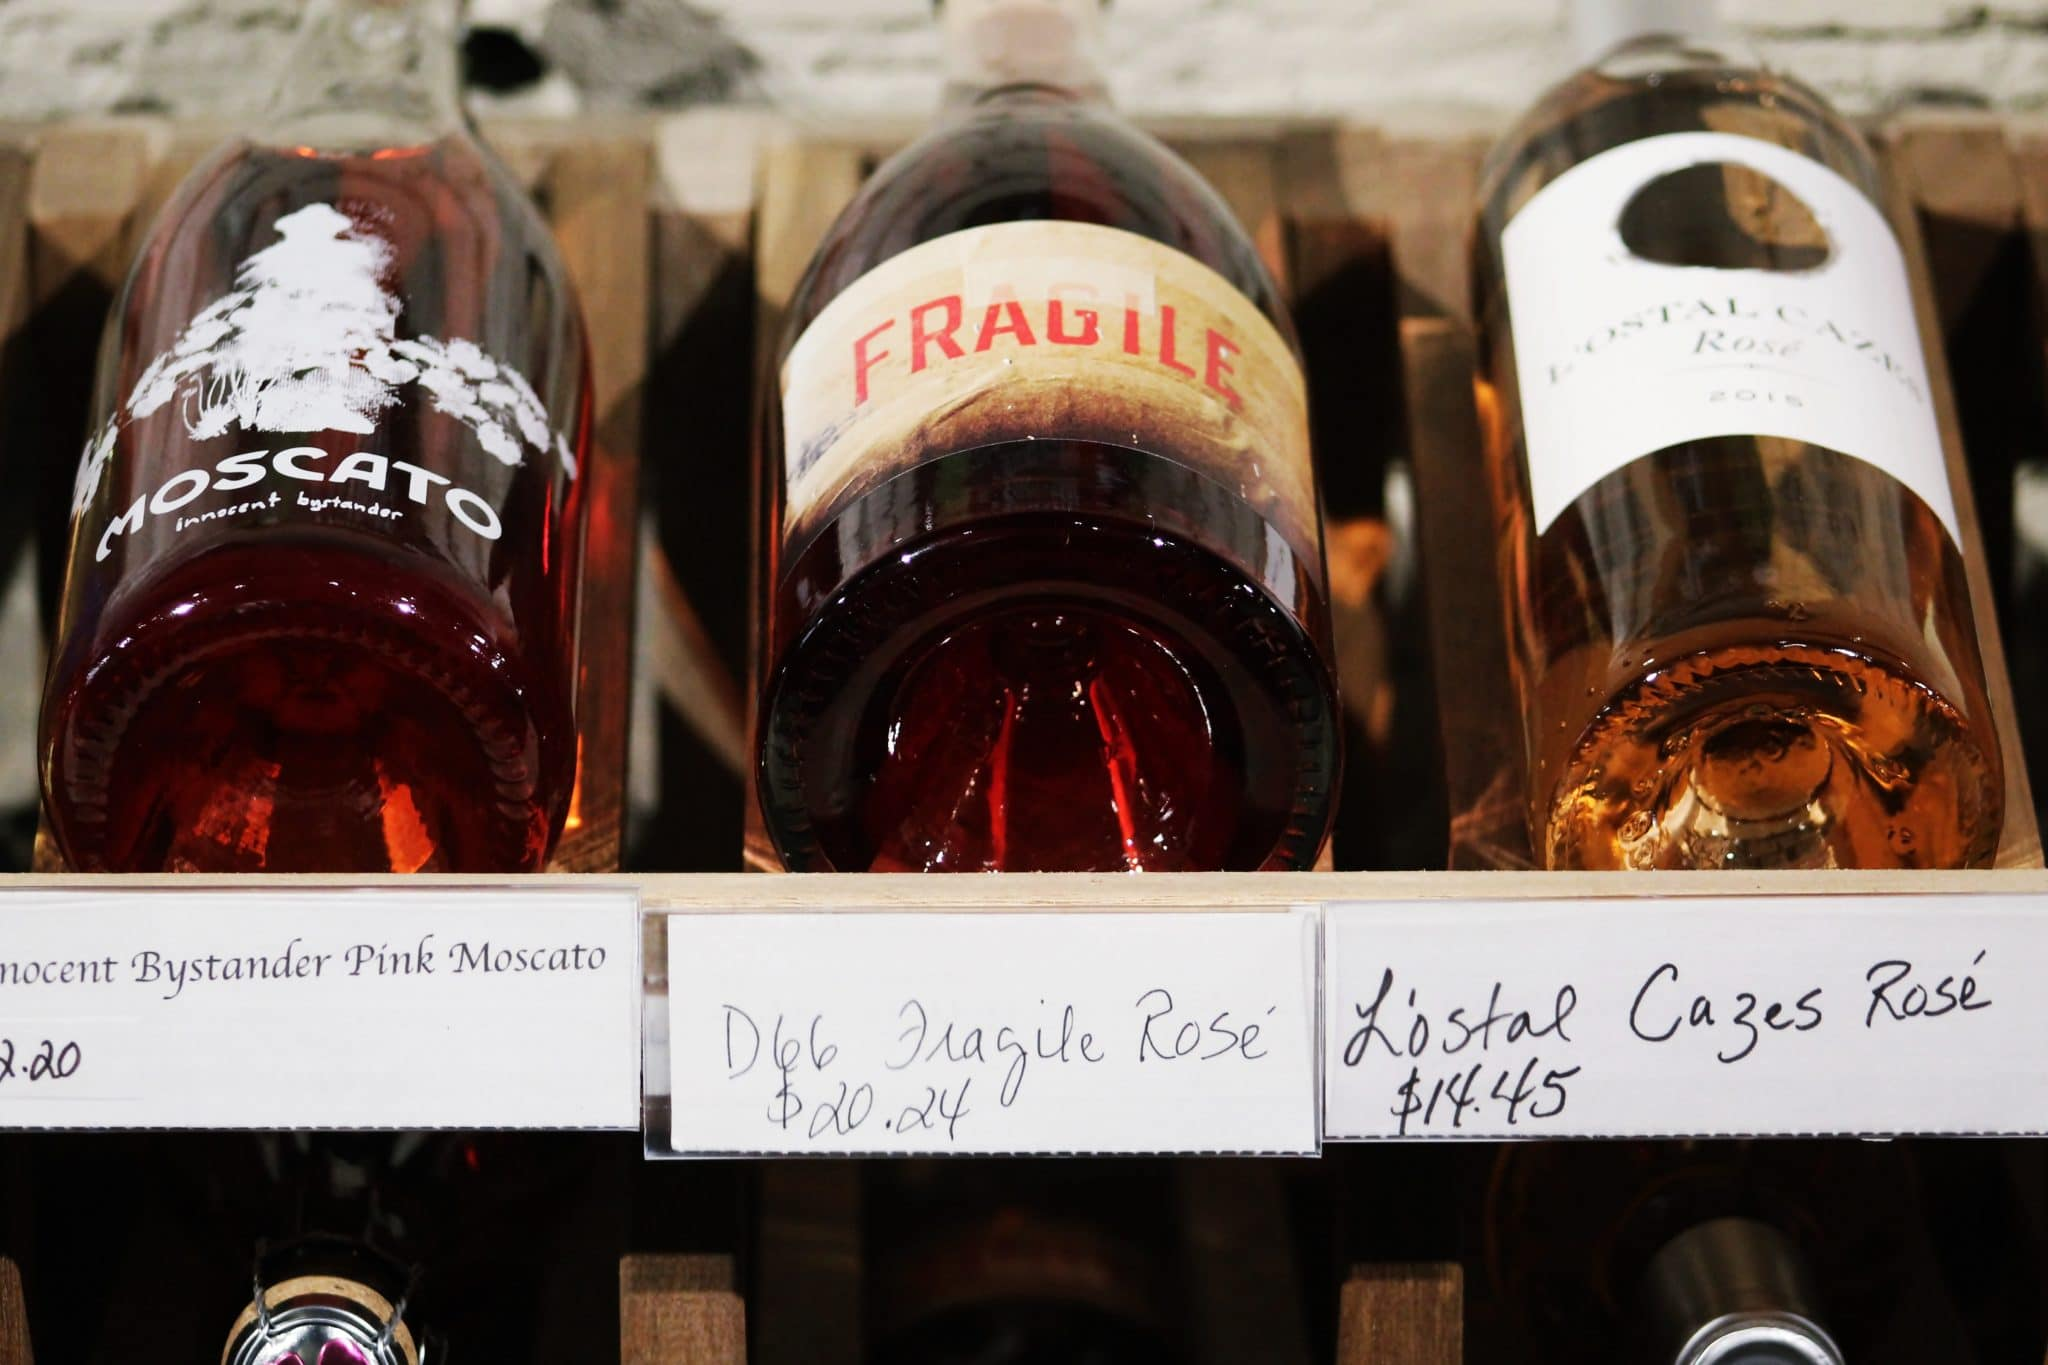 3 wine bottles, laying flat, with price tags, on a store shelf